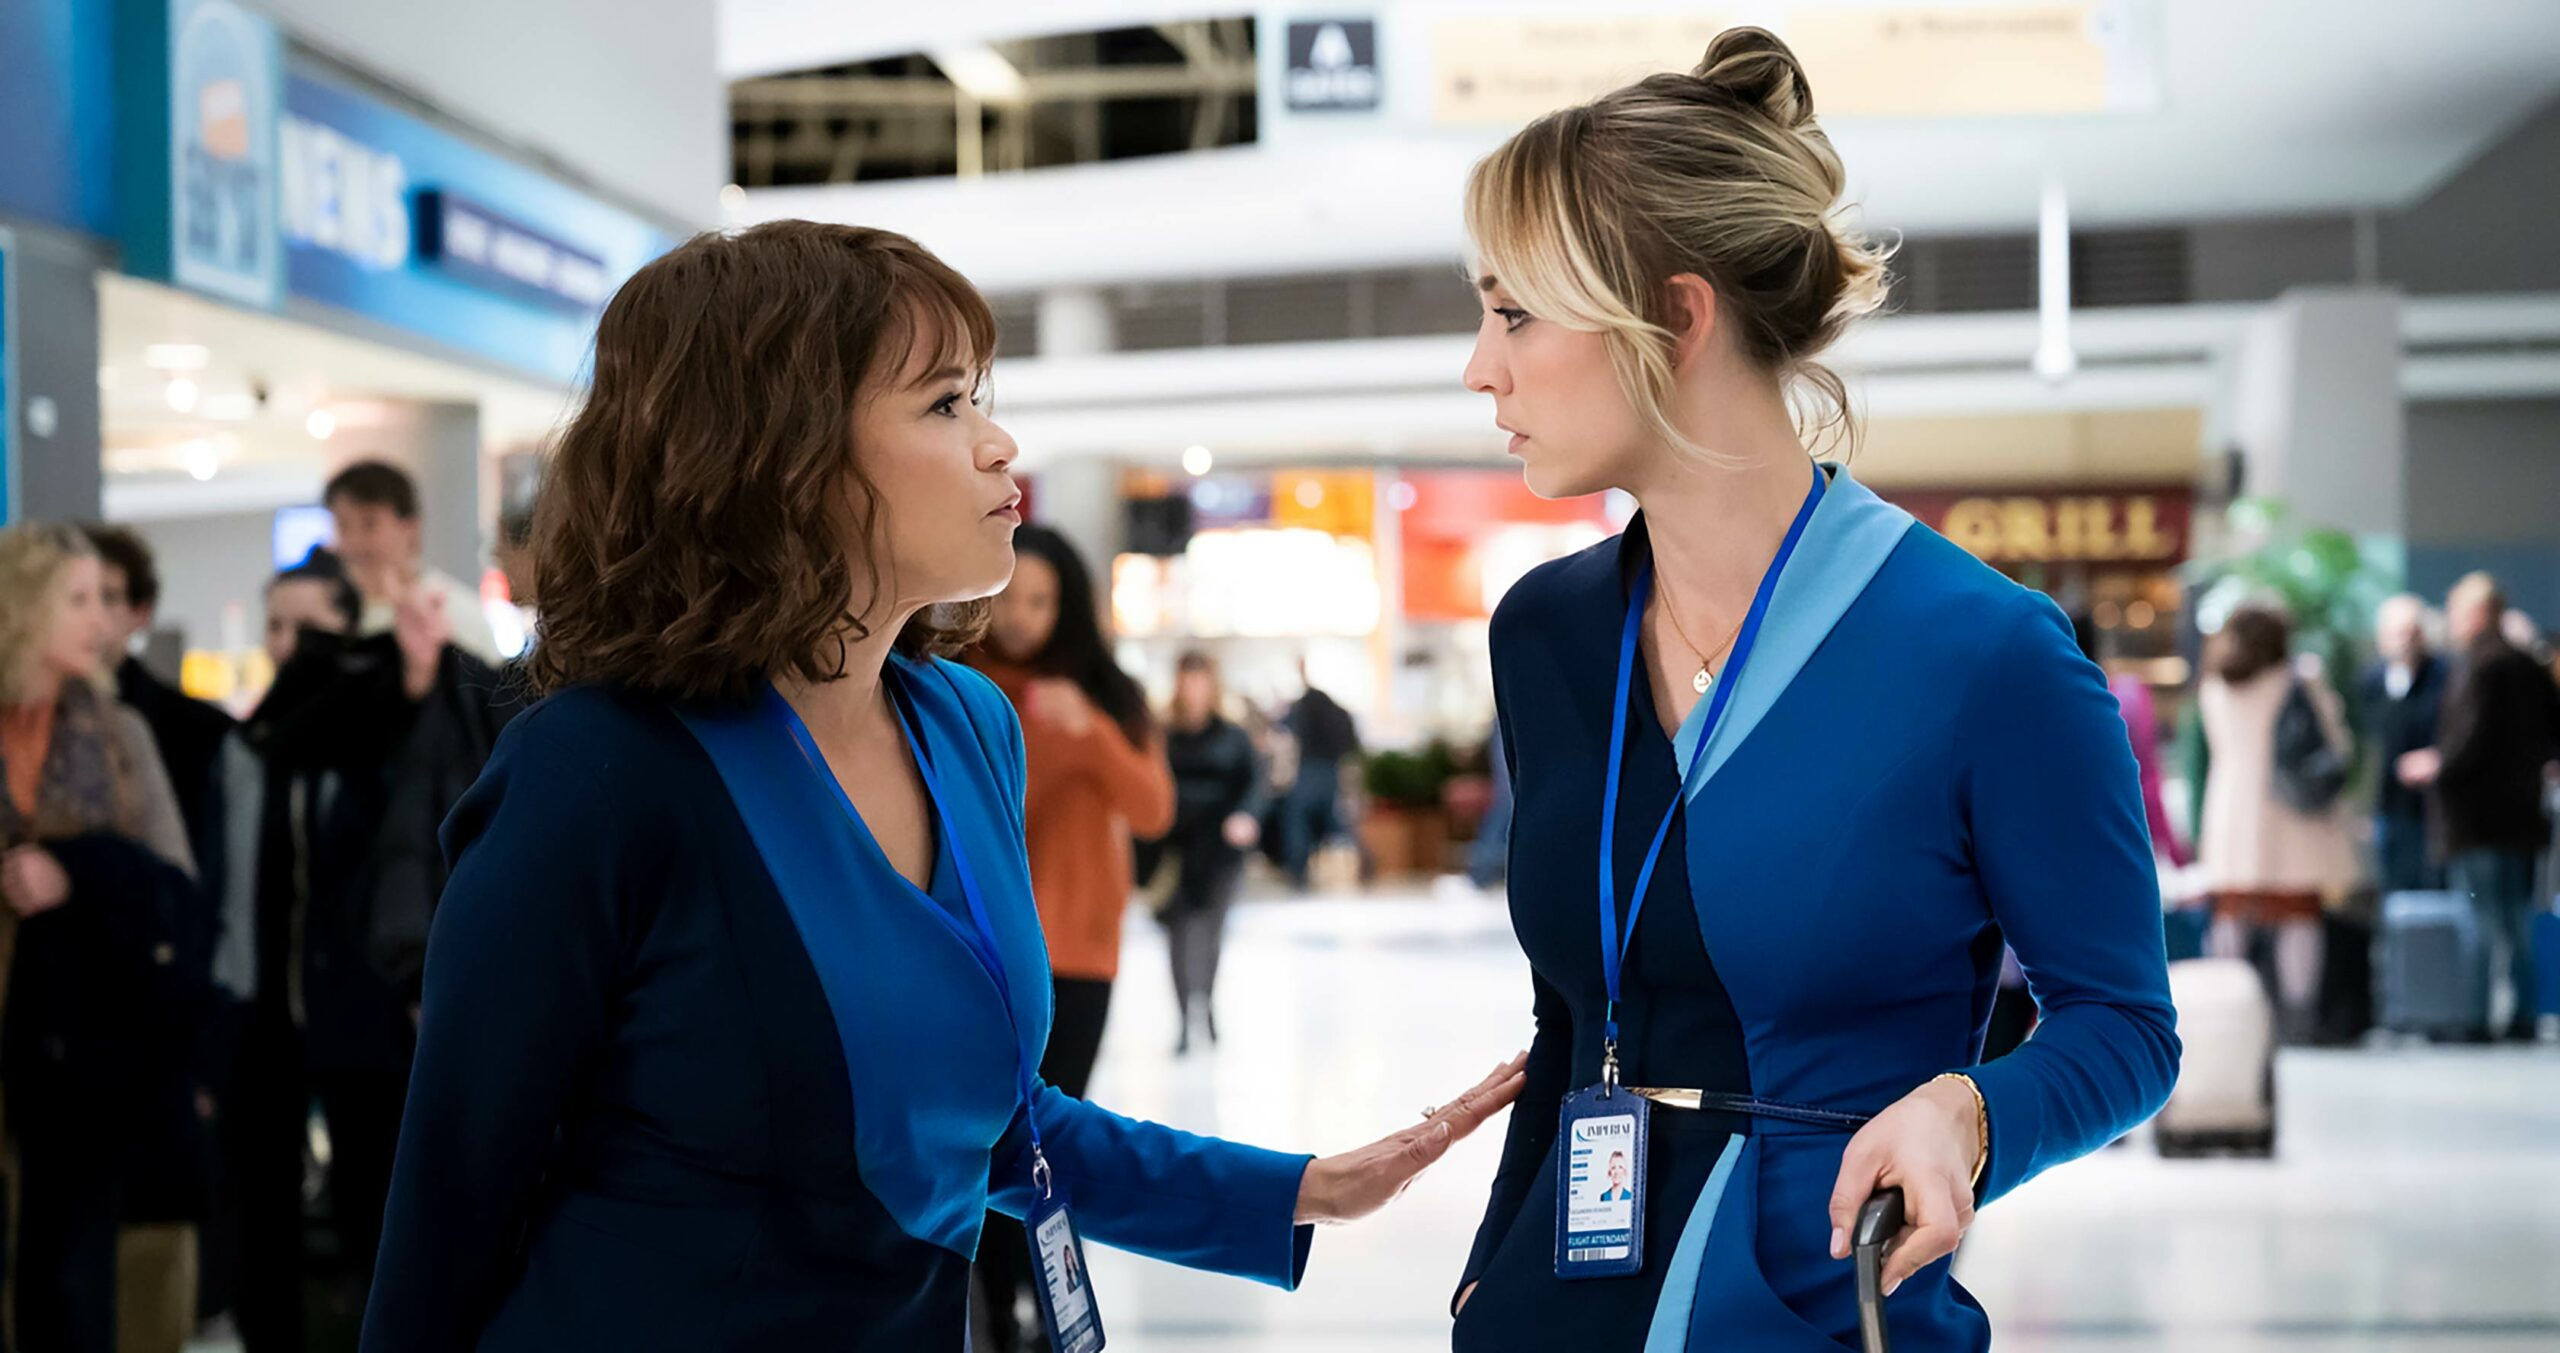 The Flight Attendant Kaley Cuoco and Rosie Perez